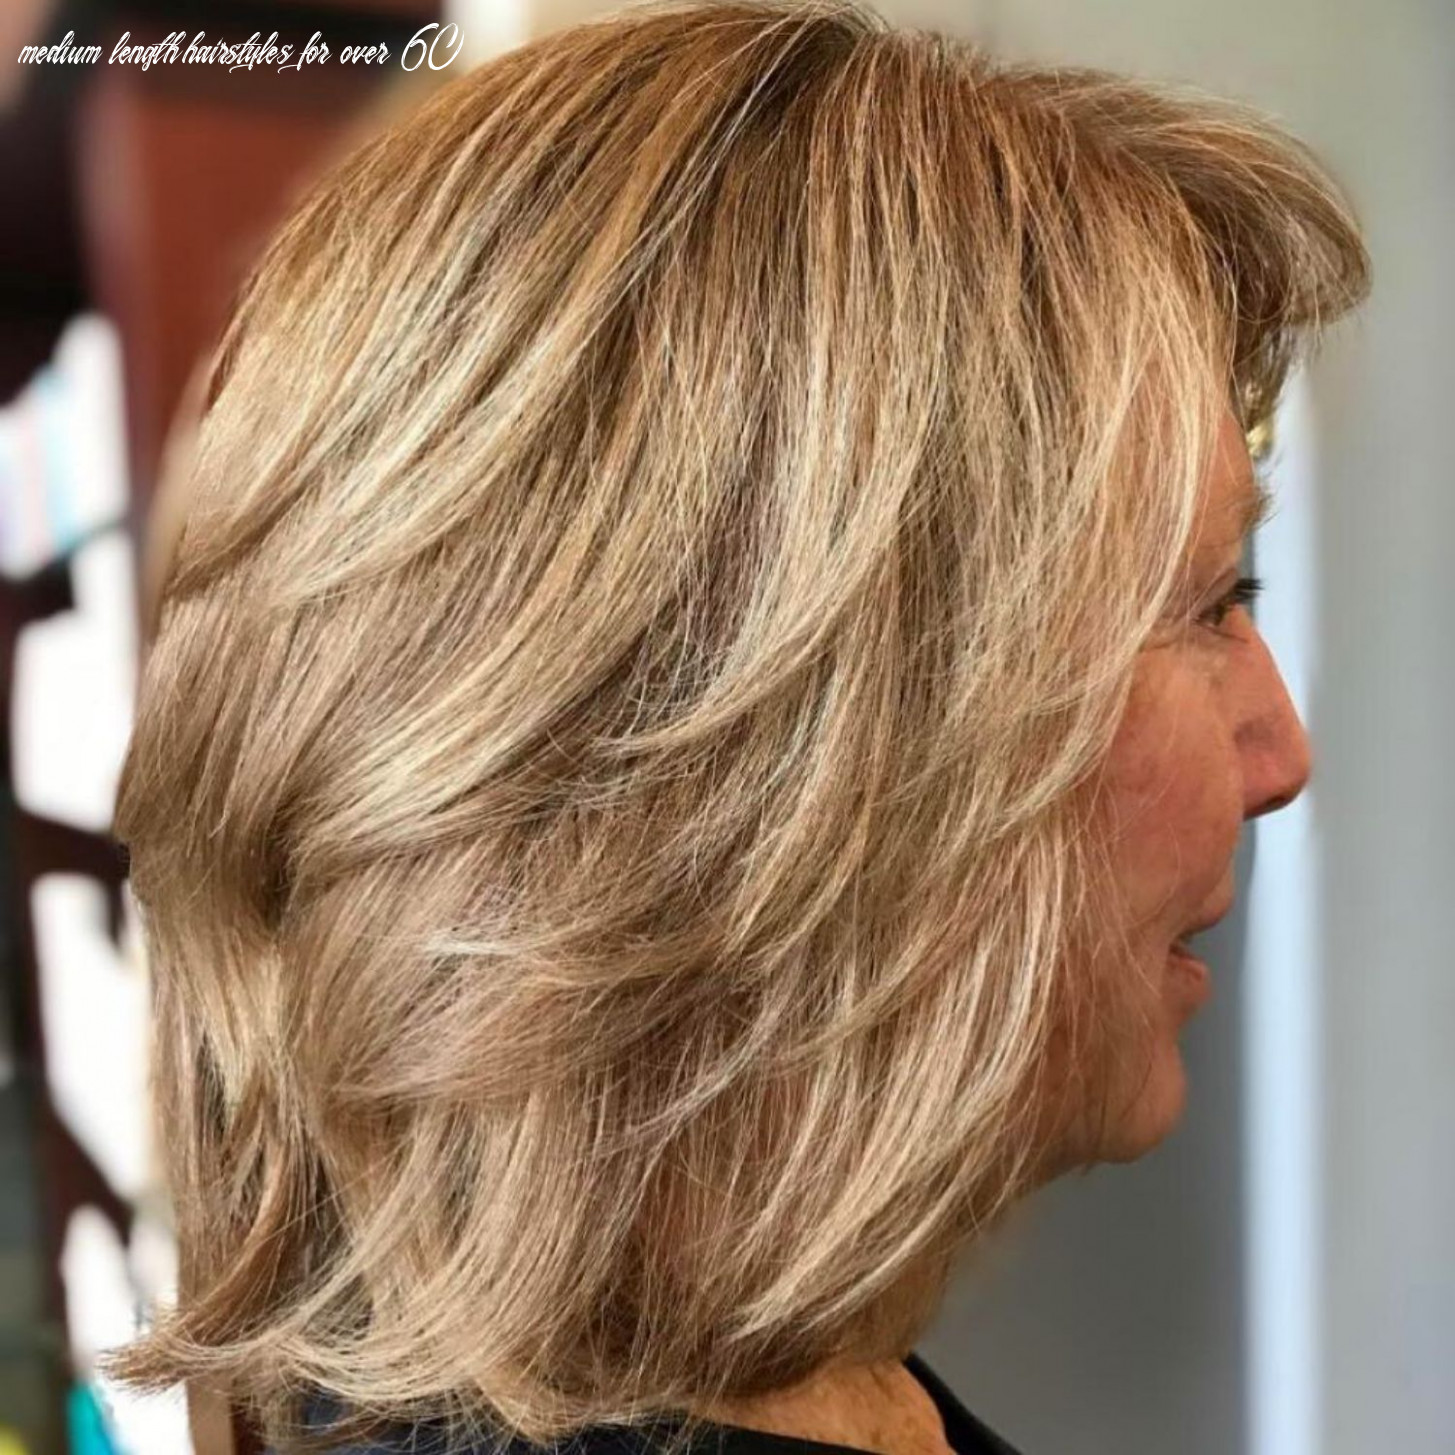 12 best hairstyles and haircuts for women over 12 to suit any